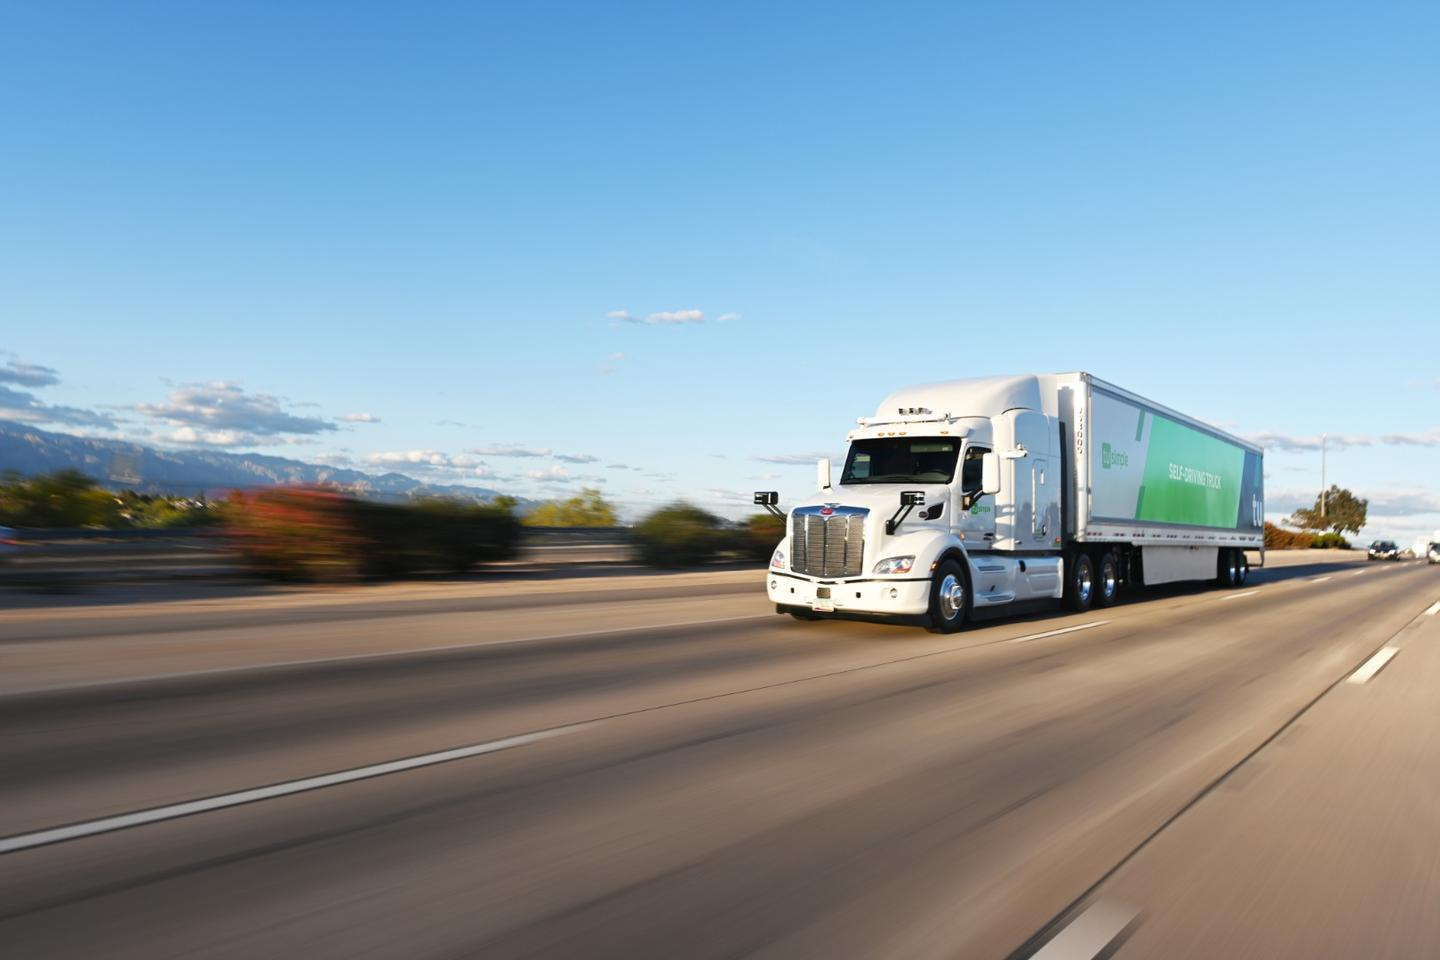 TuSimple's self-driving trucks will be used as part of a two-week trial for the US Postal Service